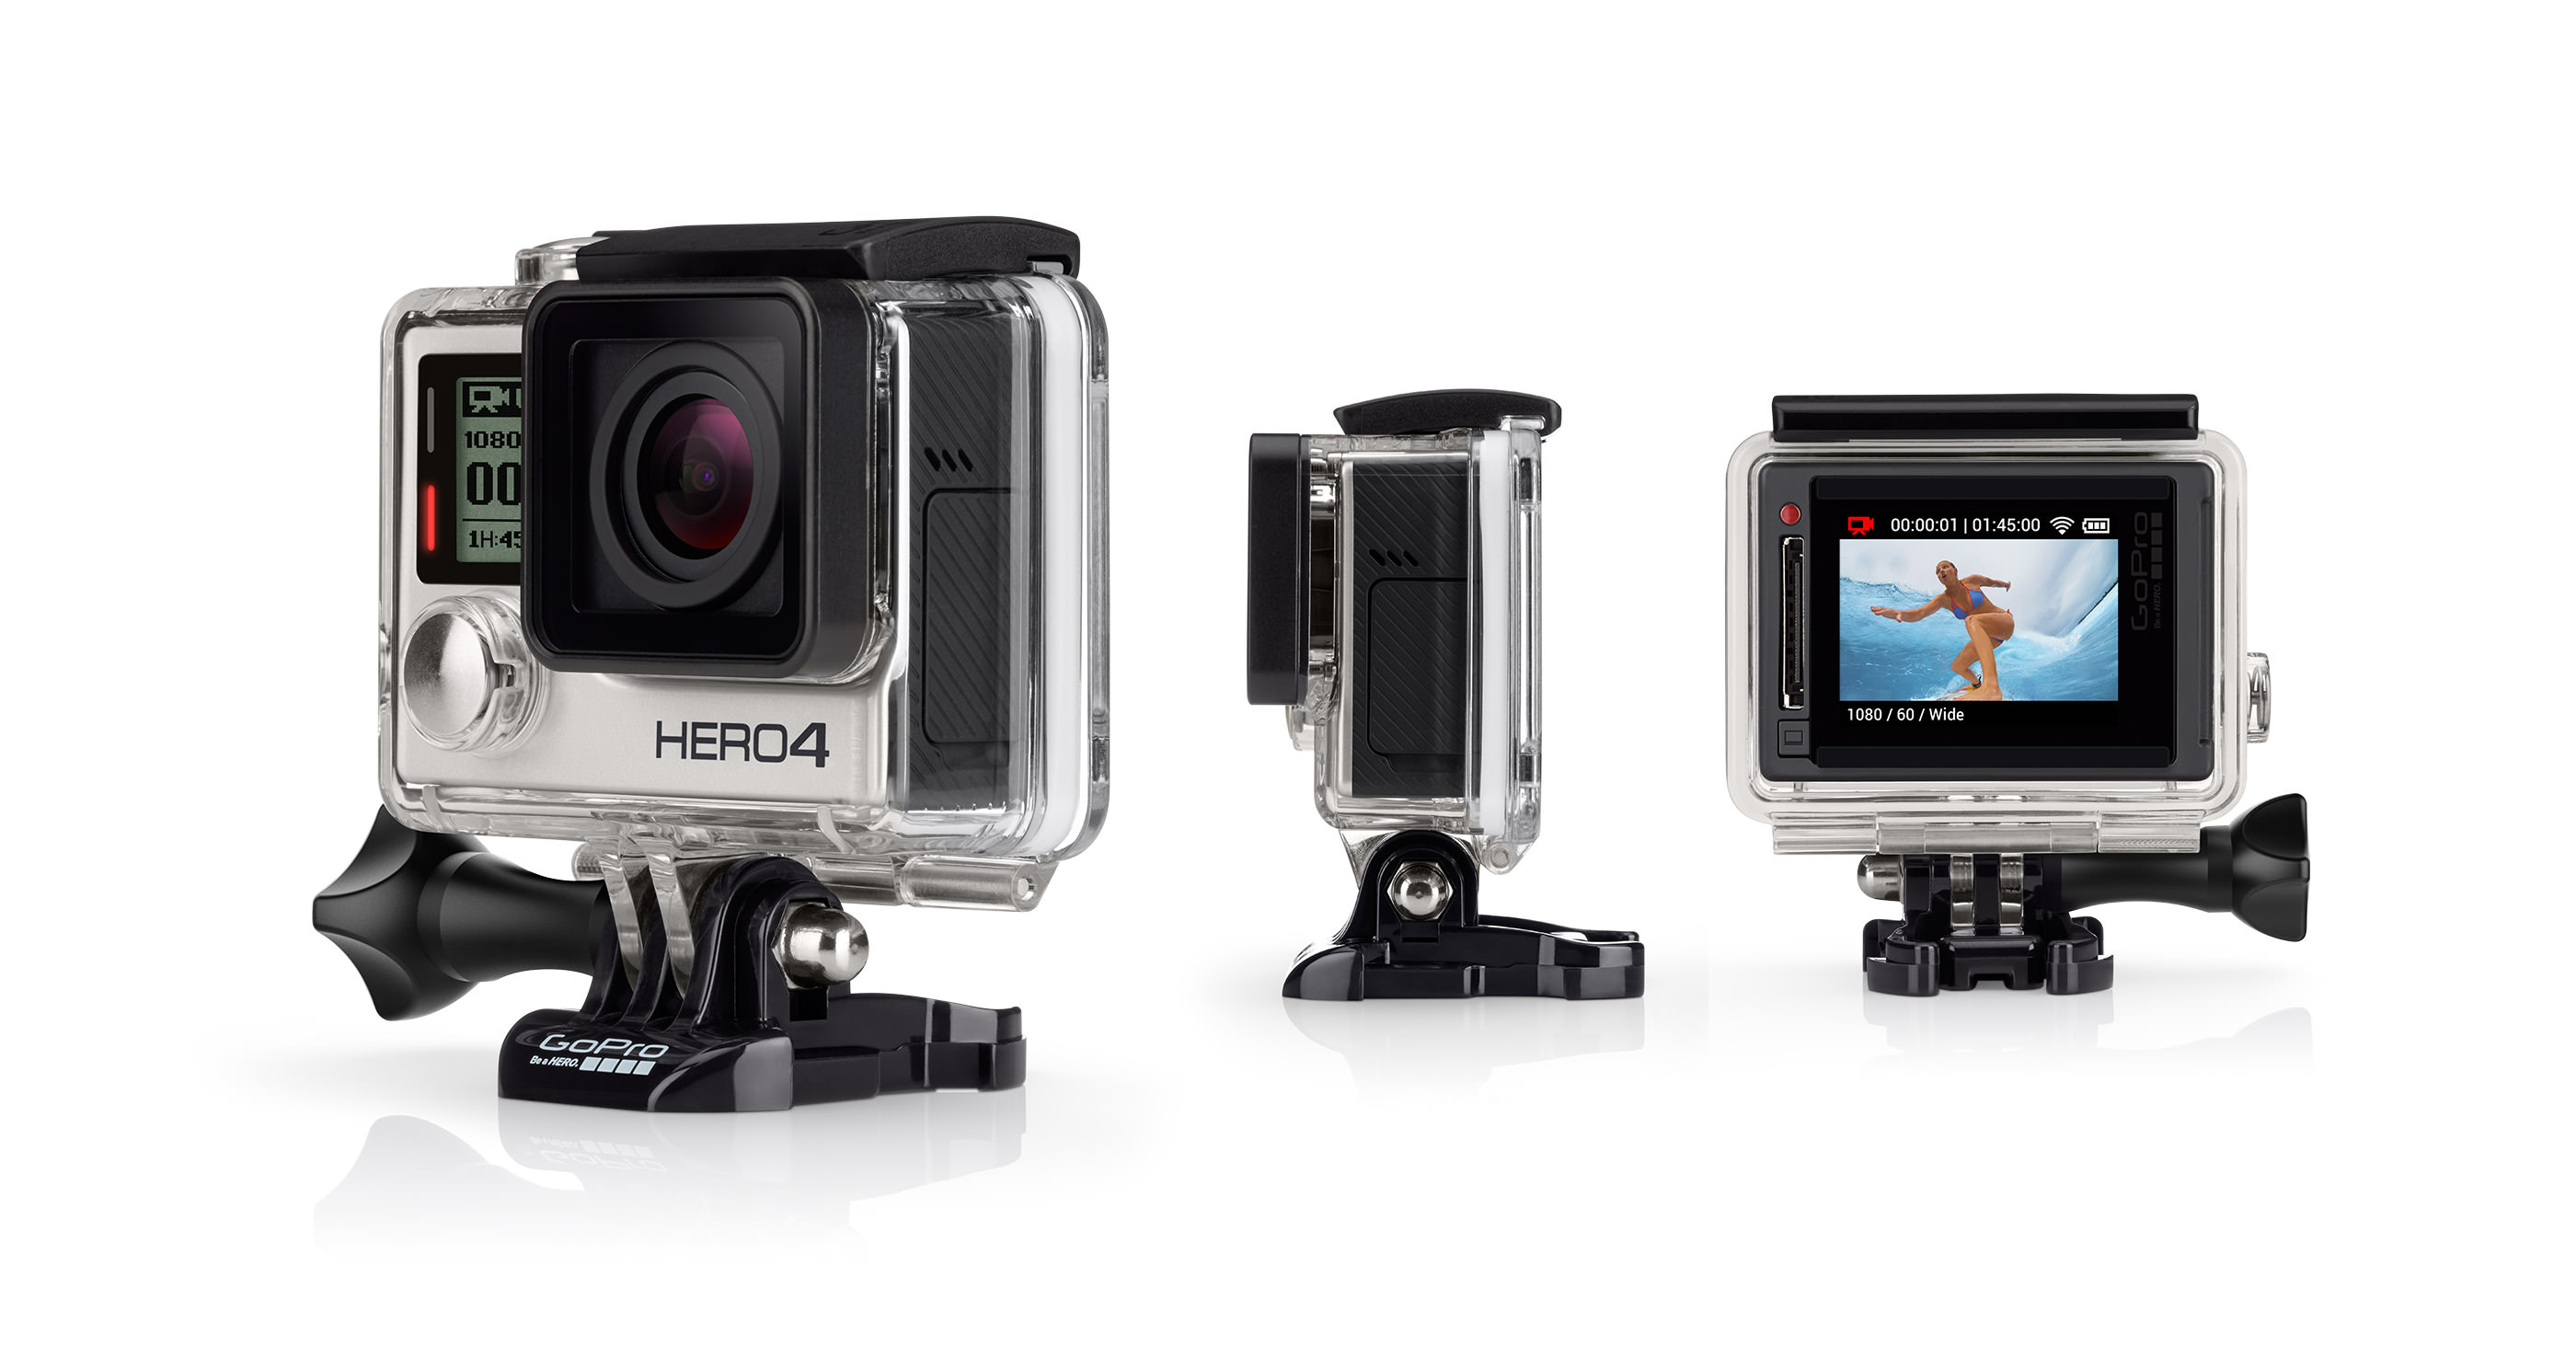 gopro hero 4 silver camera with wifi g craggs ltd